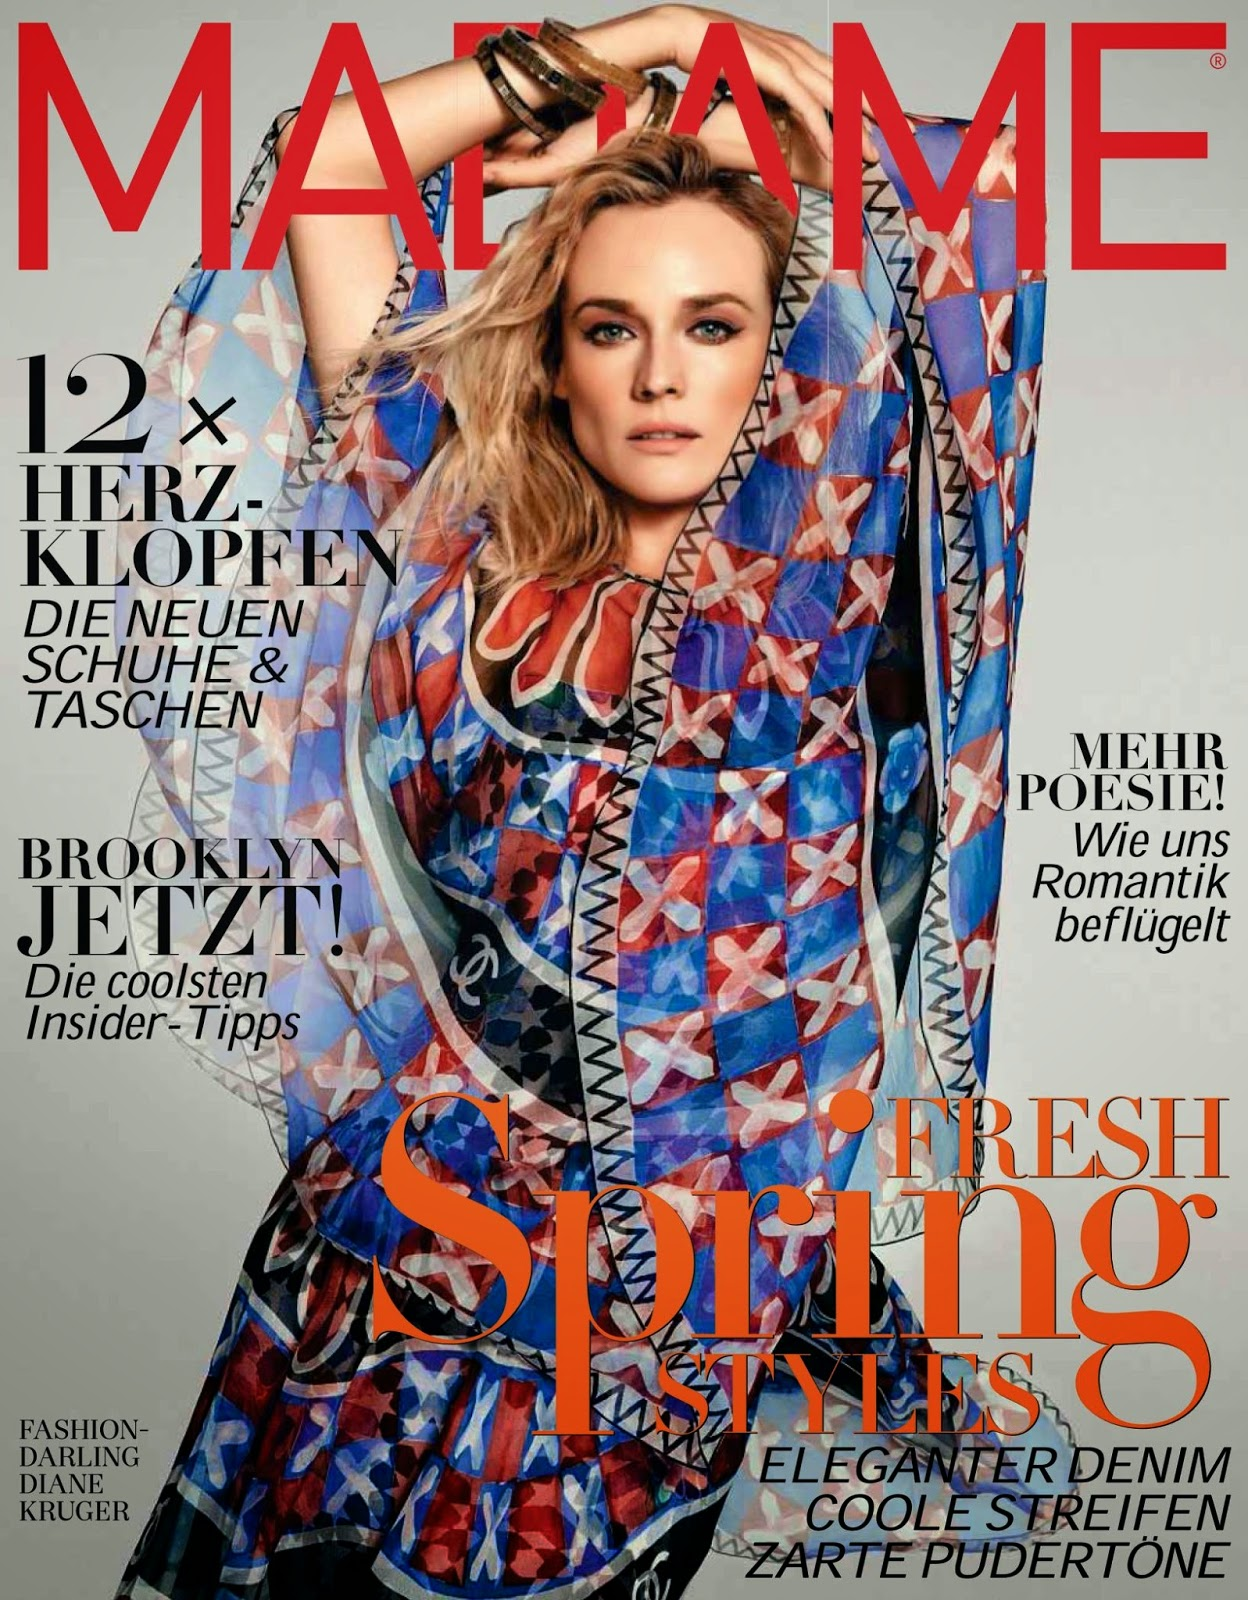 Diane Kruger - Madame, Germany, February 2015